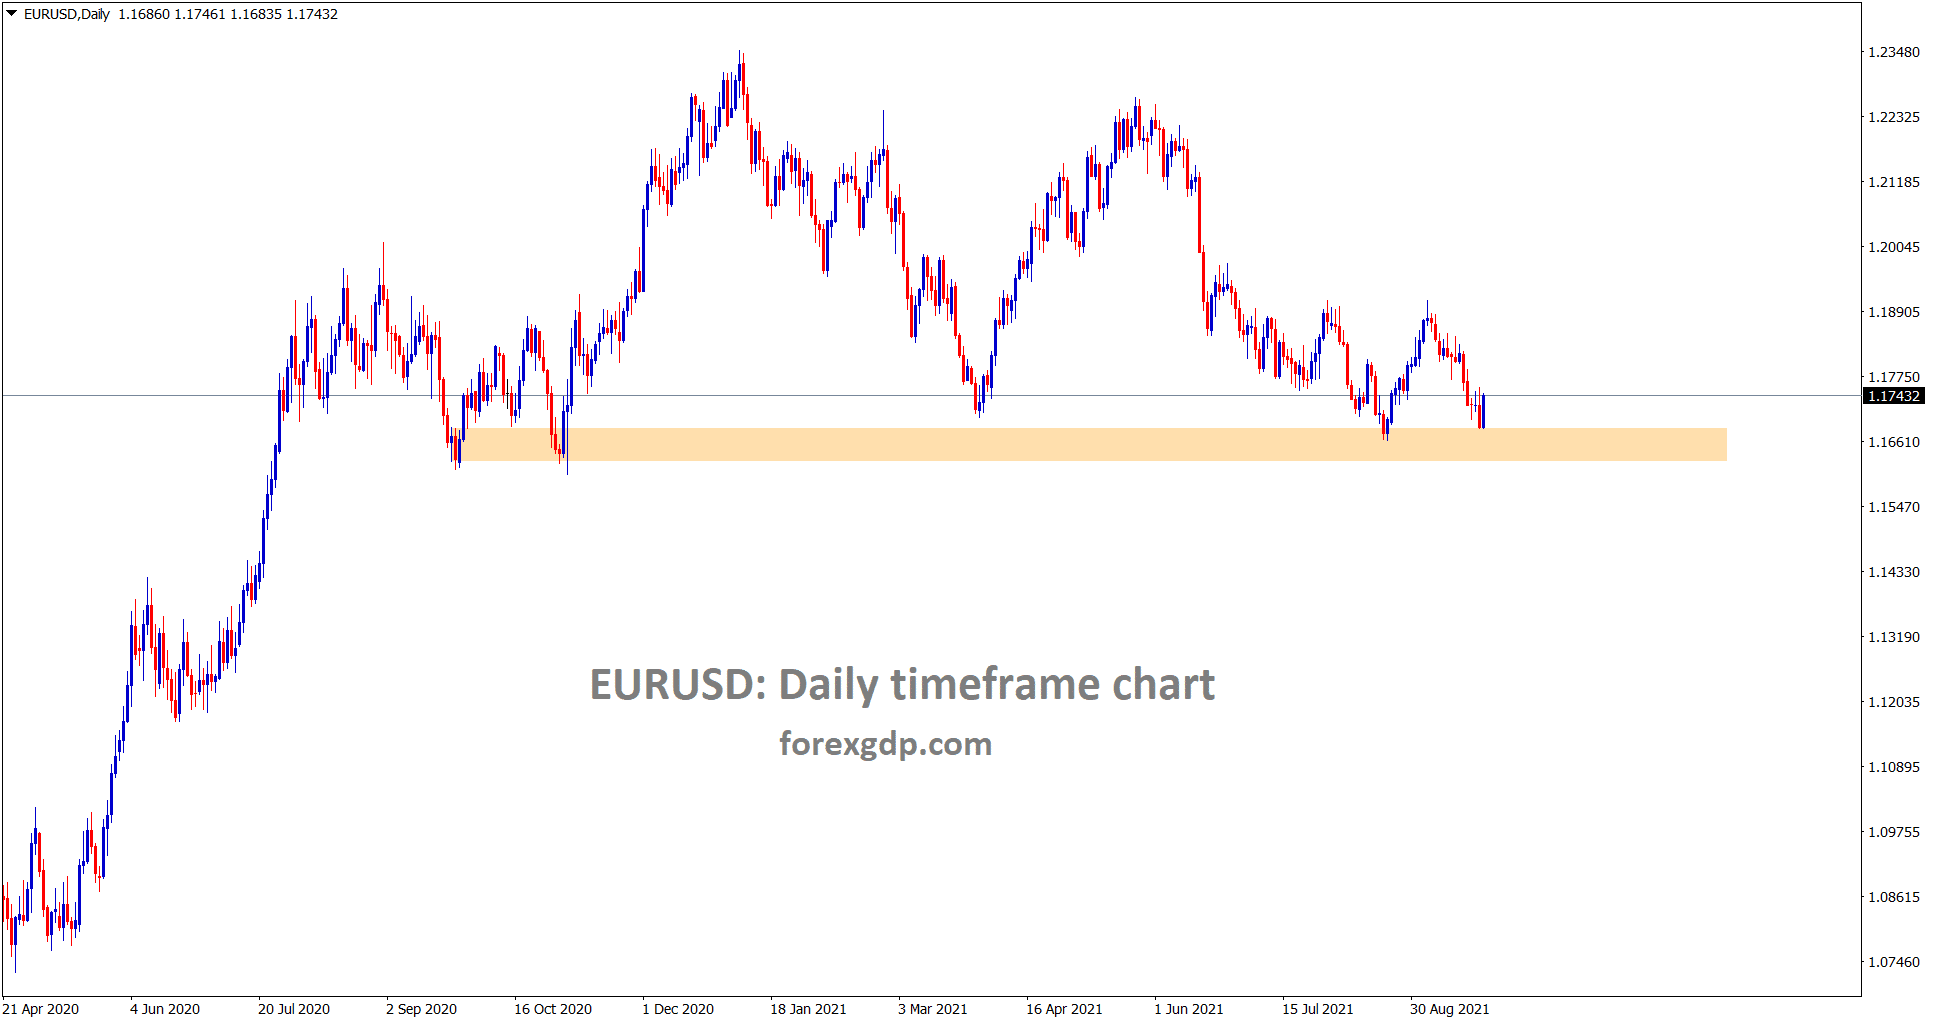 EURUSD is still standing at the major support area in the daily timeframe